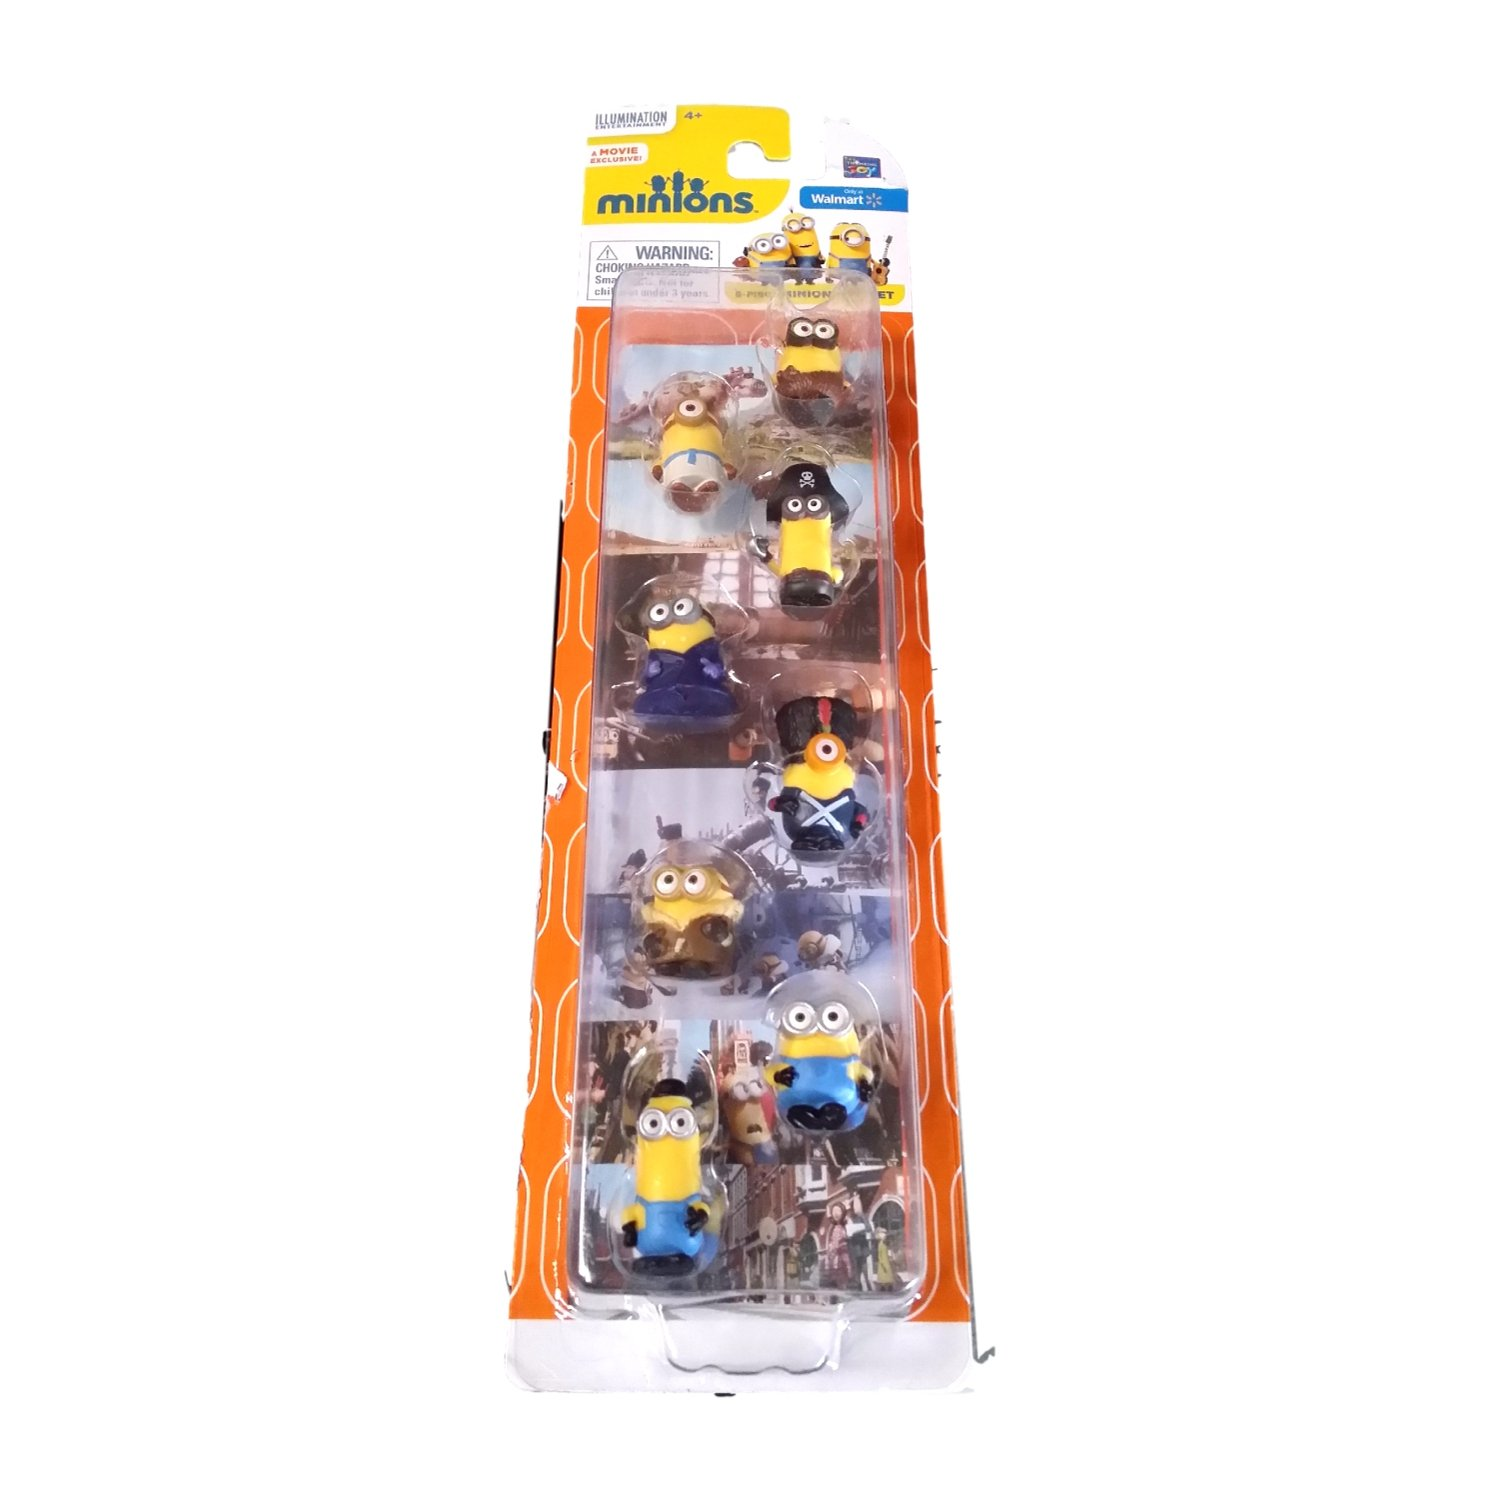 Minions Movie Deluxe 8 Figure Micron Gift Set 00098000721